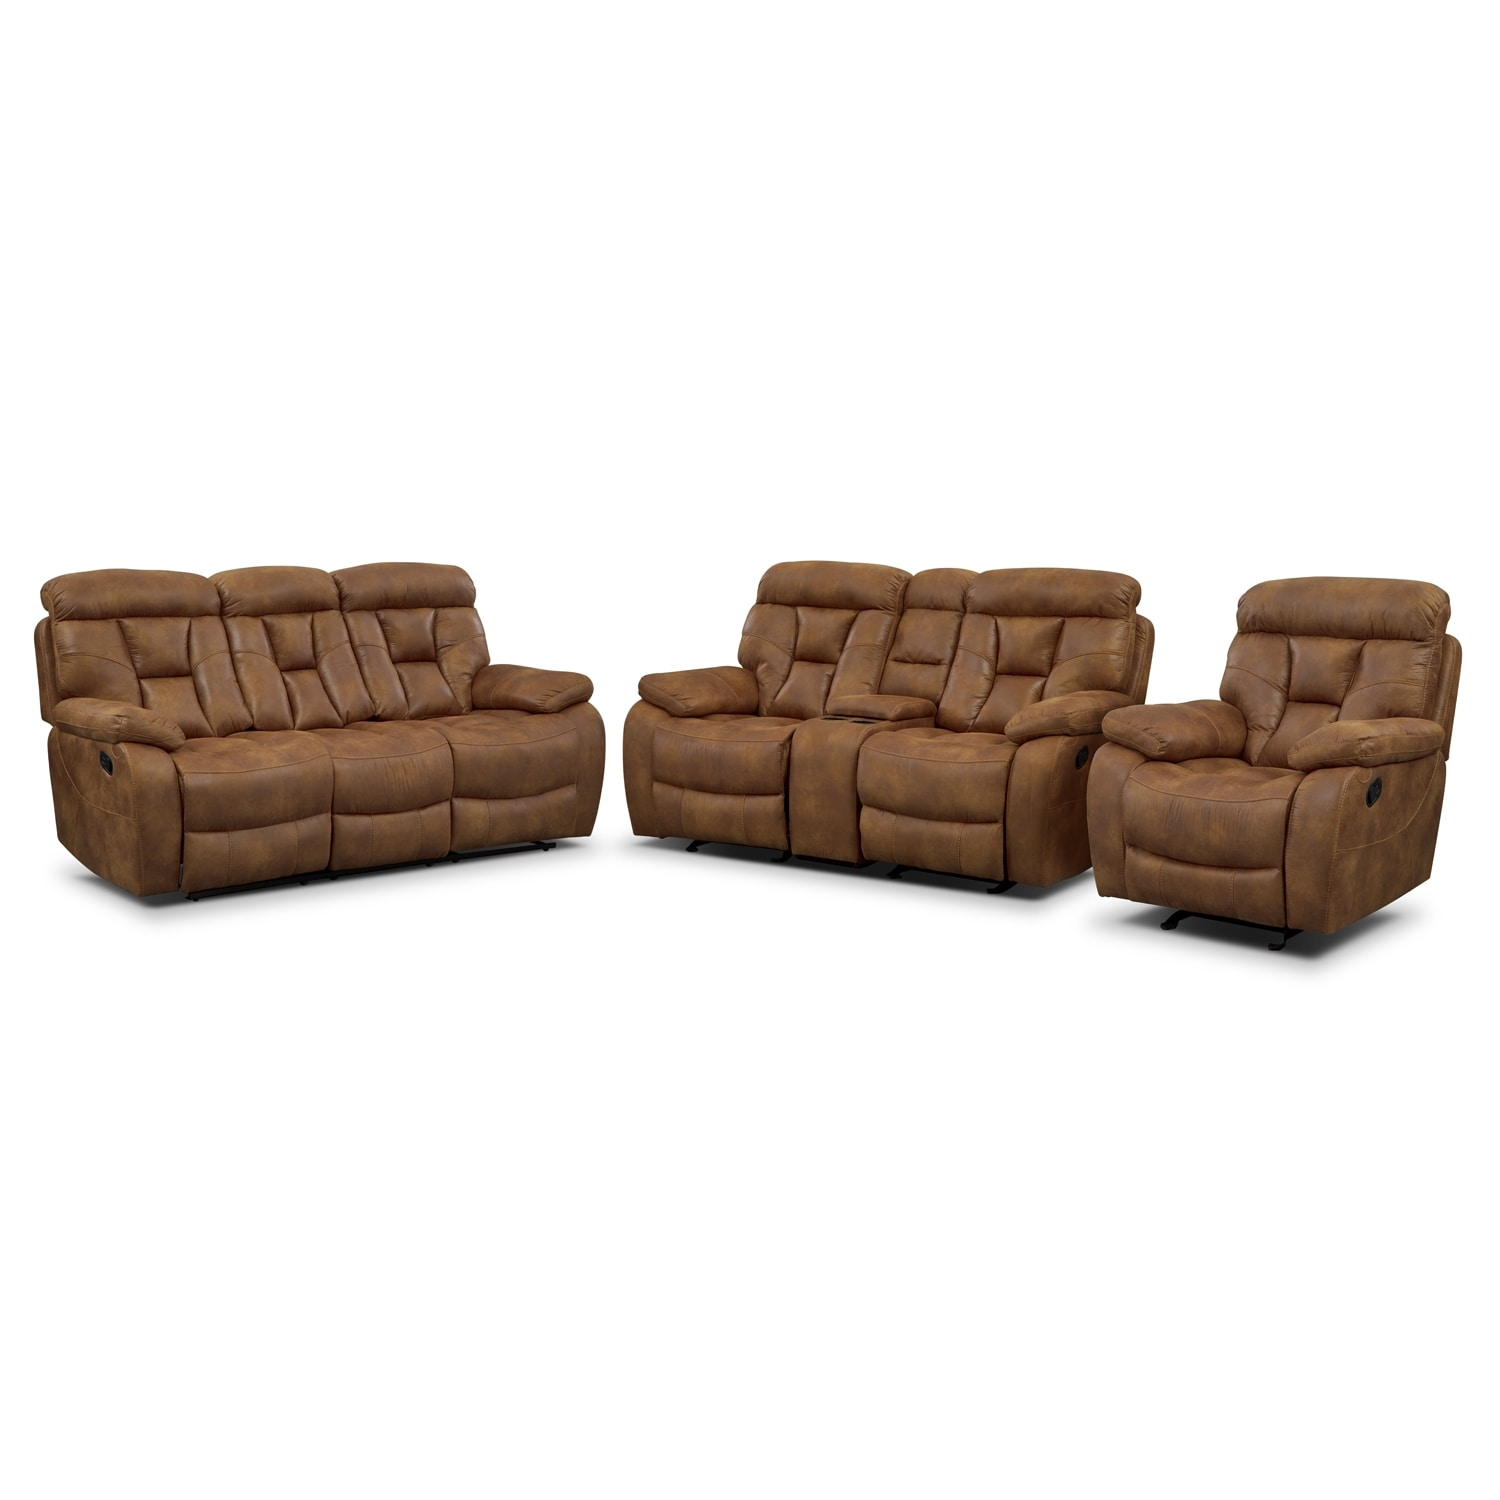 Living Room Furniture - Dakota II 3 Pc. Reclining Living Room